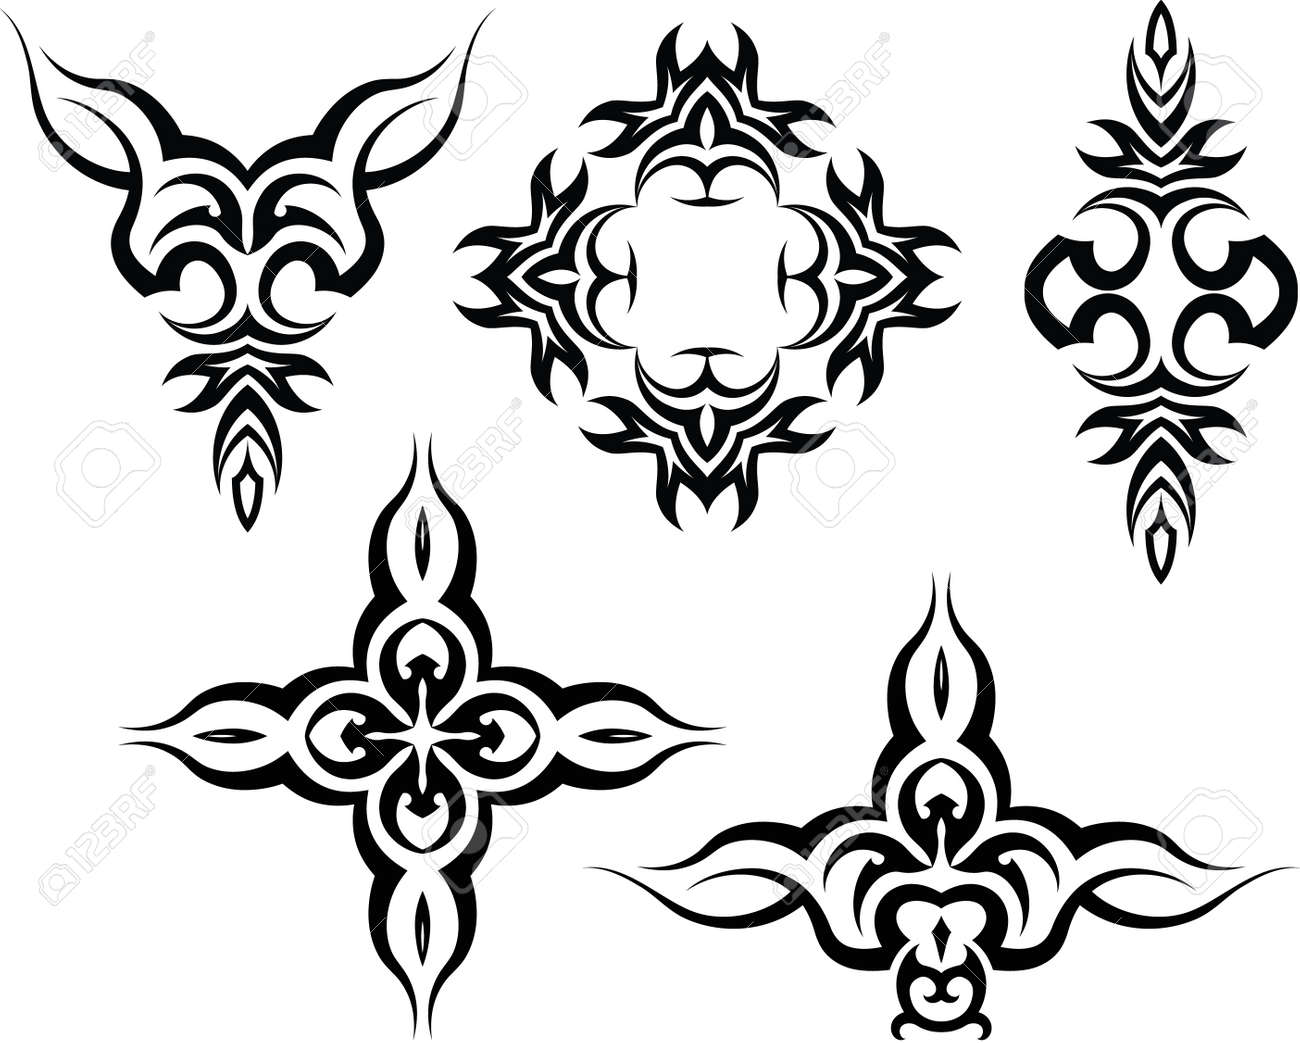 Tribal-Tattoos 31974474-Tribal-Tattoo-Design-Vector-Art-Stock-Vector